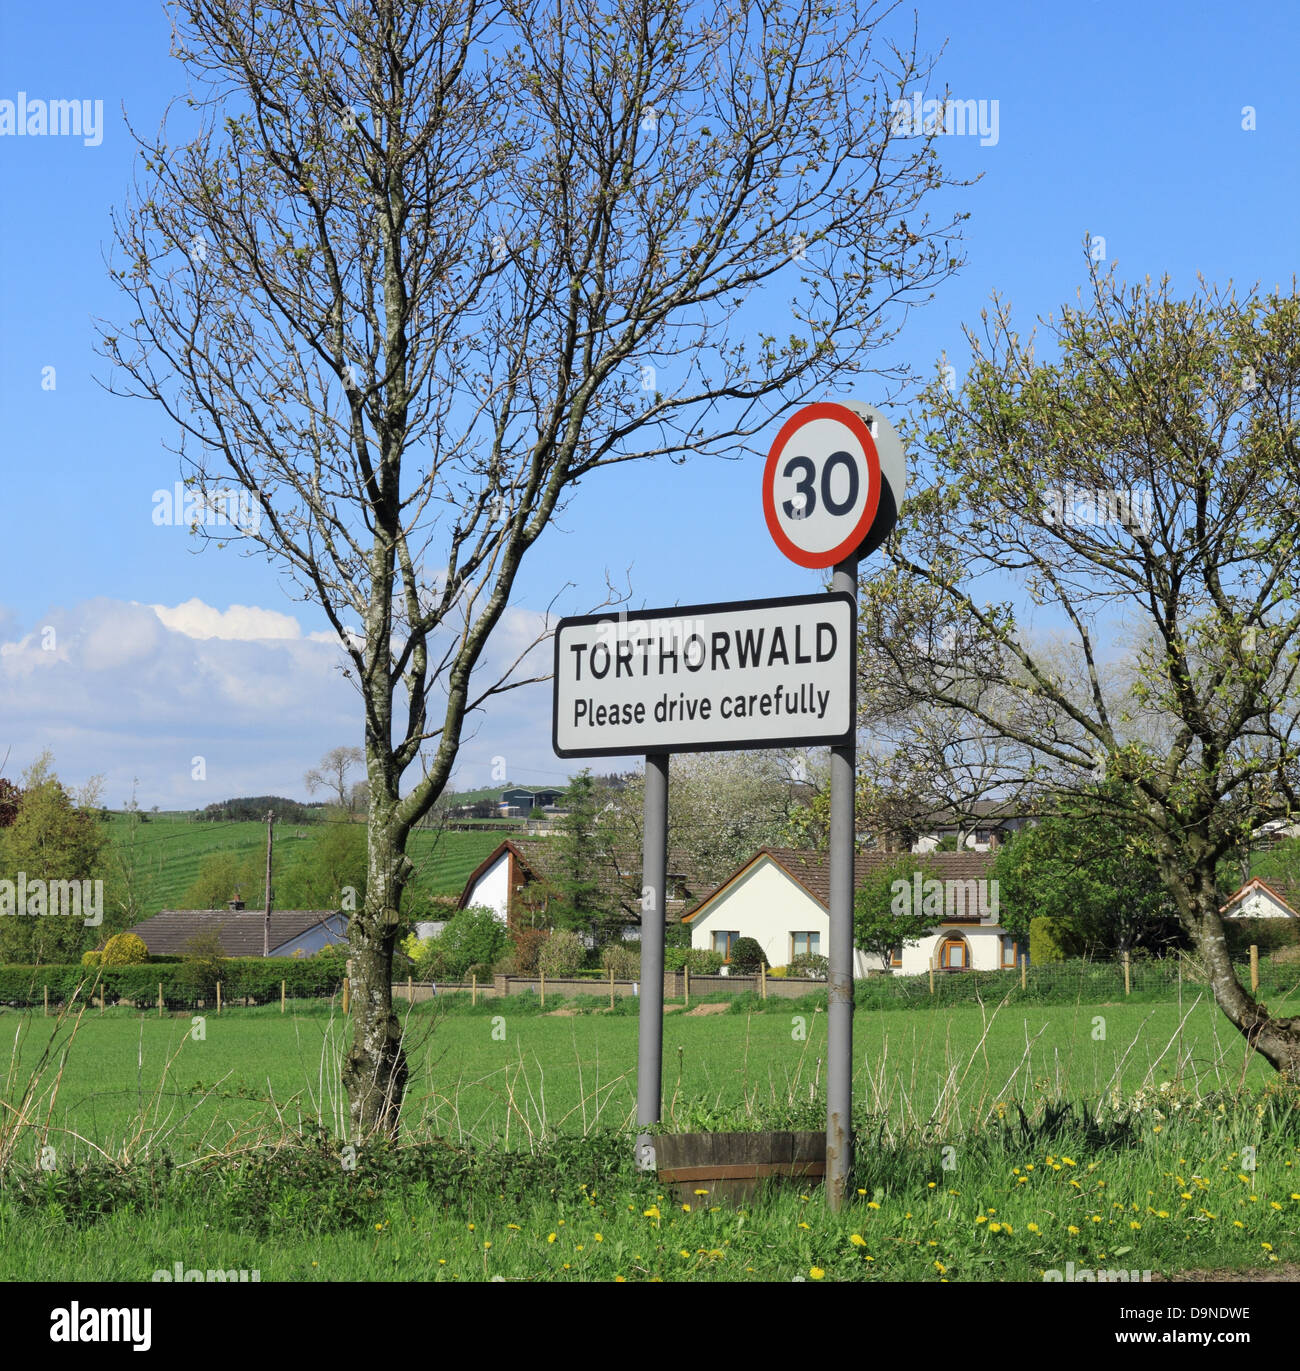 30 MPH Traffic Road Sign at Torthorwald Village, Dumfries and Galloway, Scotland, UK - Stock Image